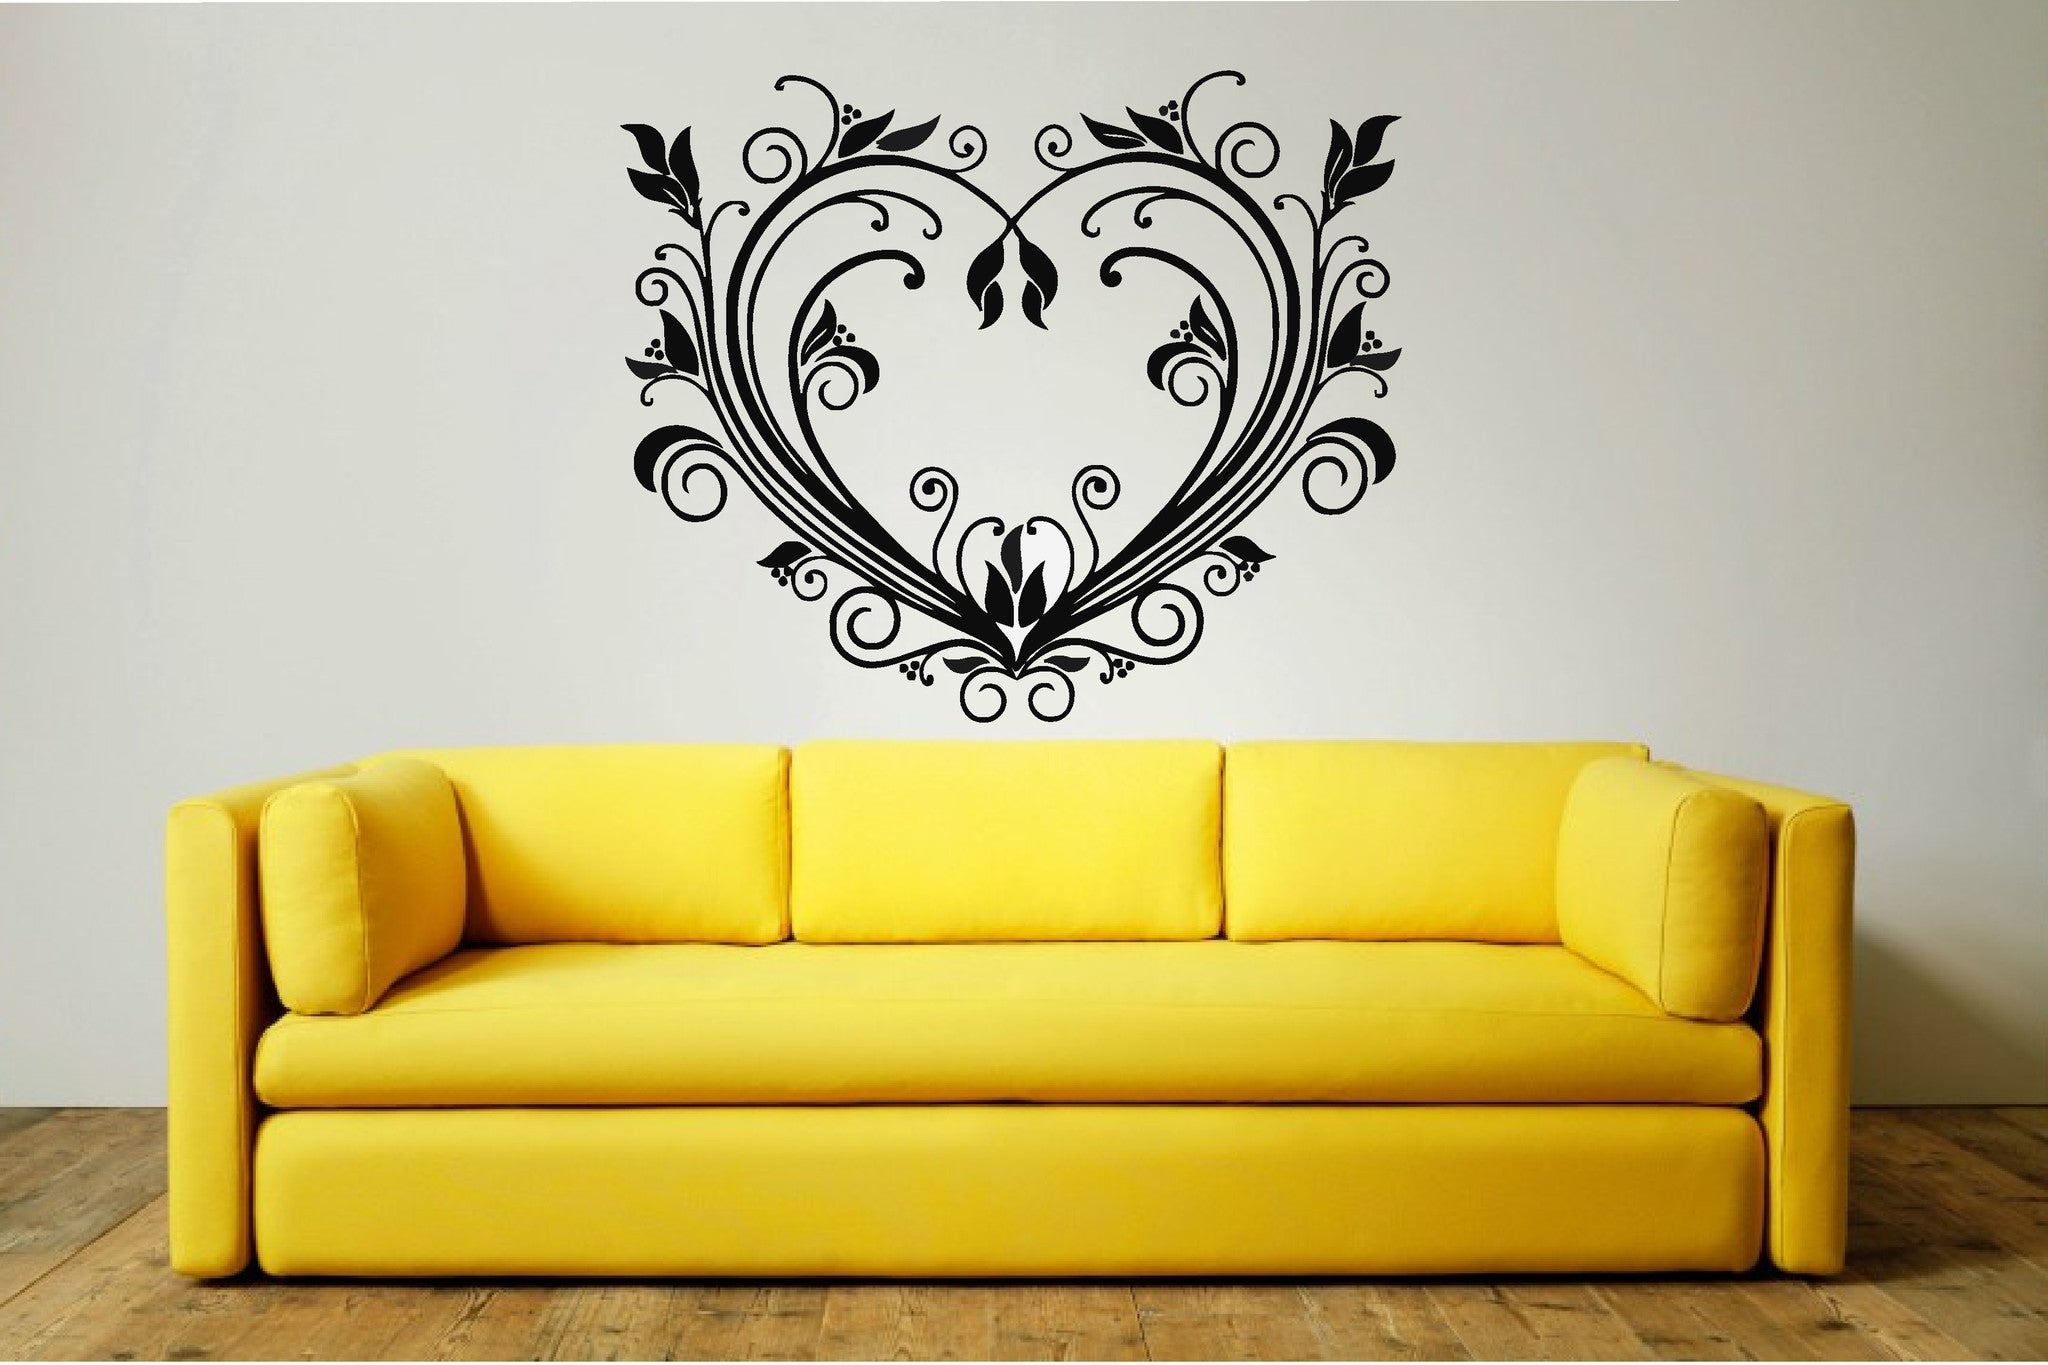 Old Fashioned Heart Shaped Wall Art Images - The Wall Art ...